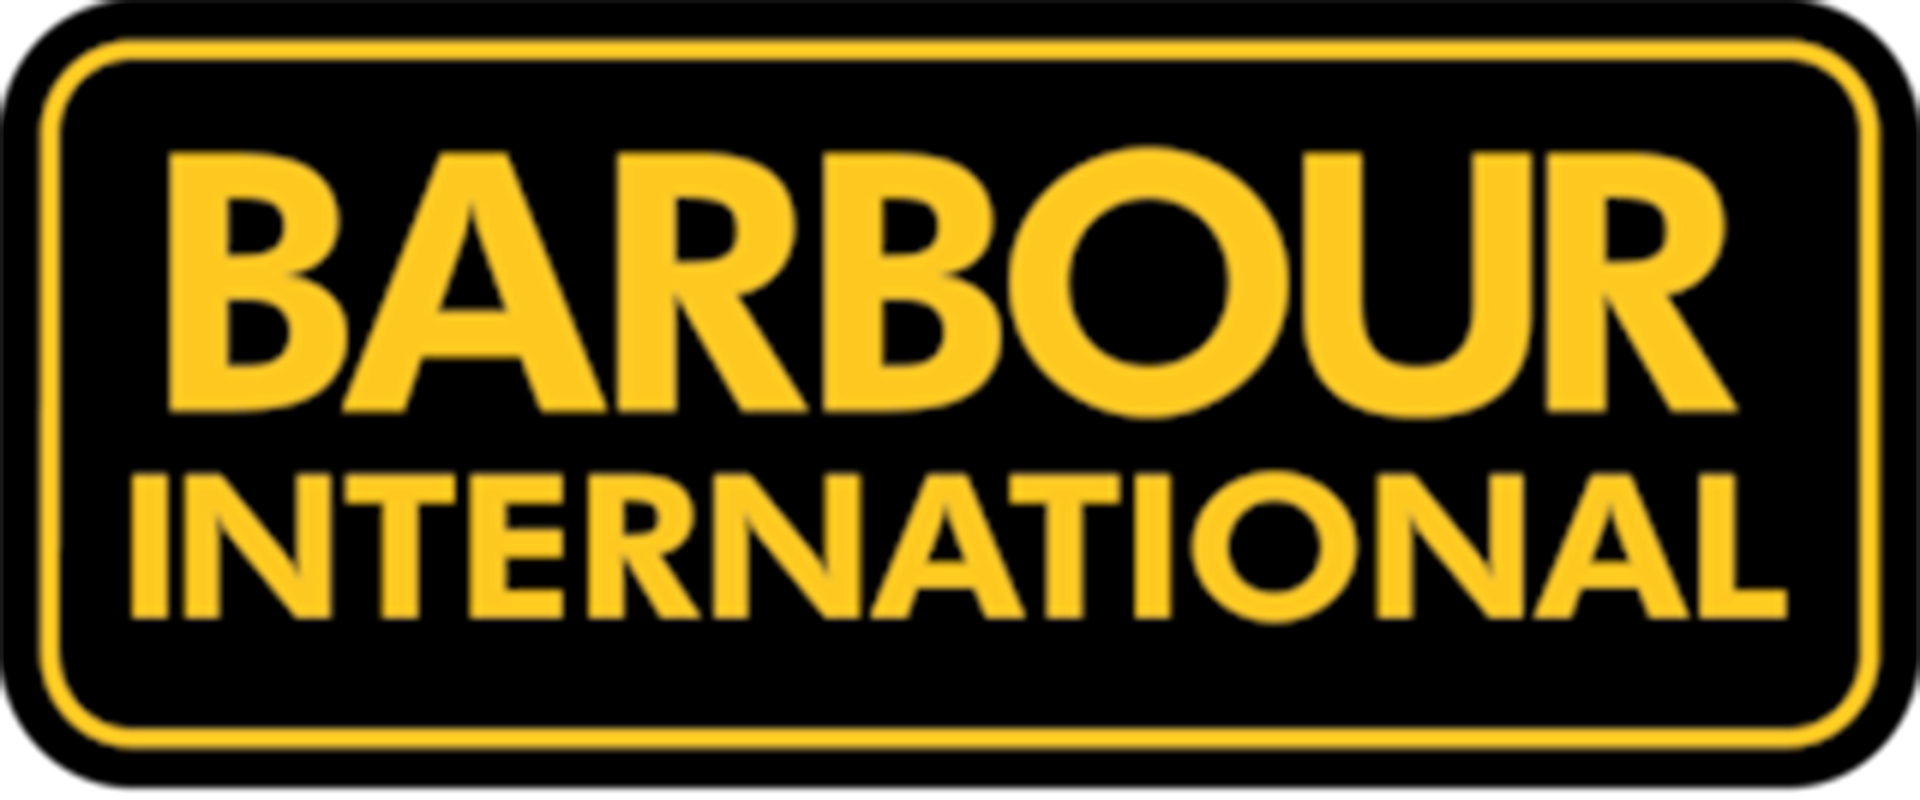 barbour international black and yellow logo